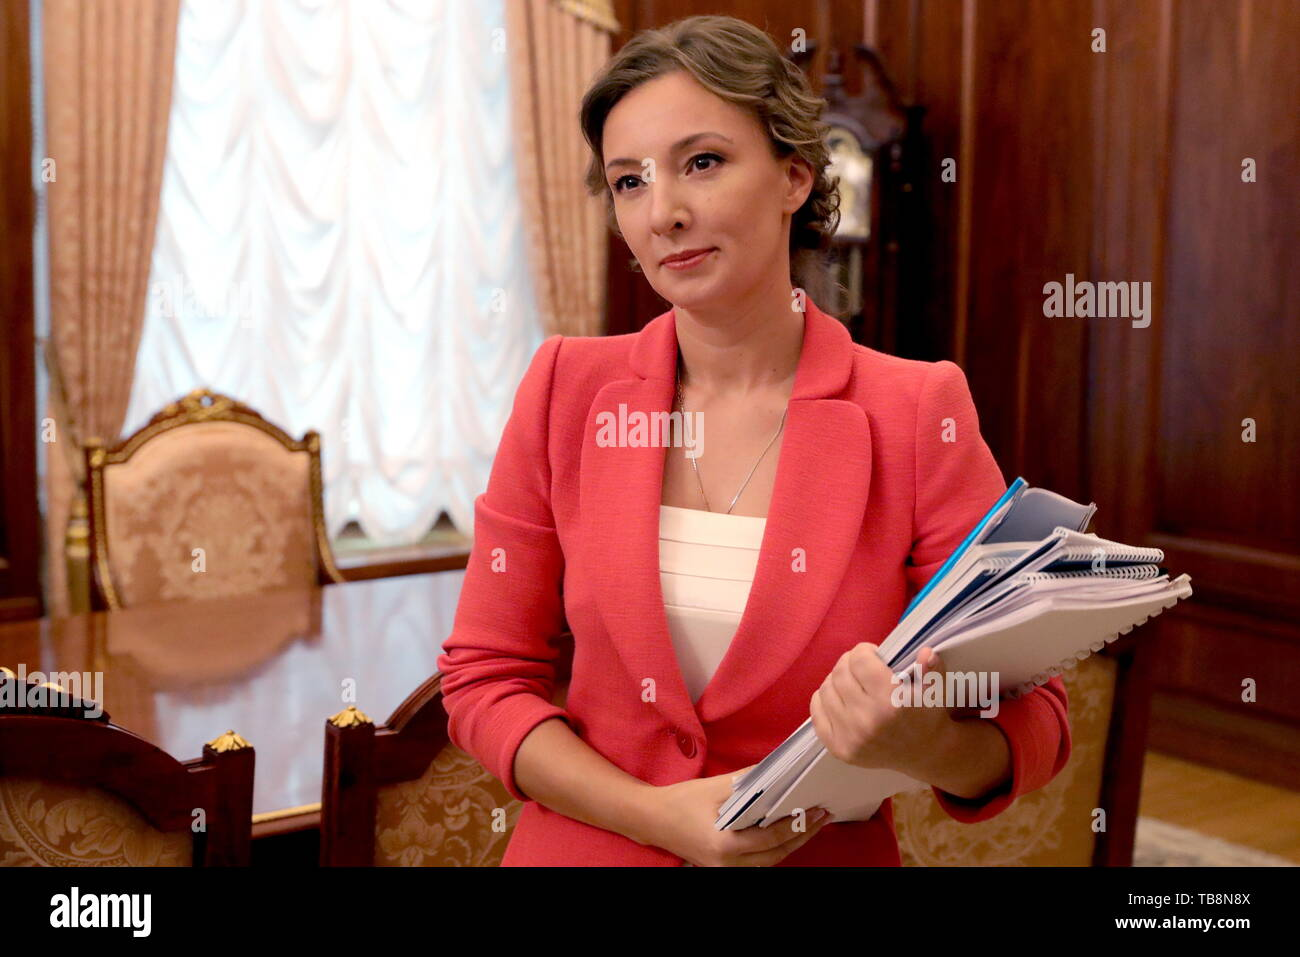 Moscow, Russia. 31st May, 2019. MOSCOW, RUSSIA - MAY 31, 2019: Russia's Presidential Commissioner for Children's Rights Anna Kuznetsova during a meeting with Russia's President Vladimir Putin at the Moscow Kremlin. Mikhail Klimentyev/Russian Presidential Press and Information Office/TASS Credit: ITAR-TASS News Agency/Alamy Live News - Stock Image